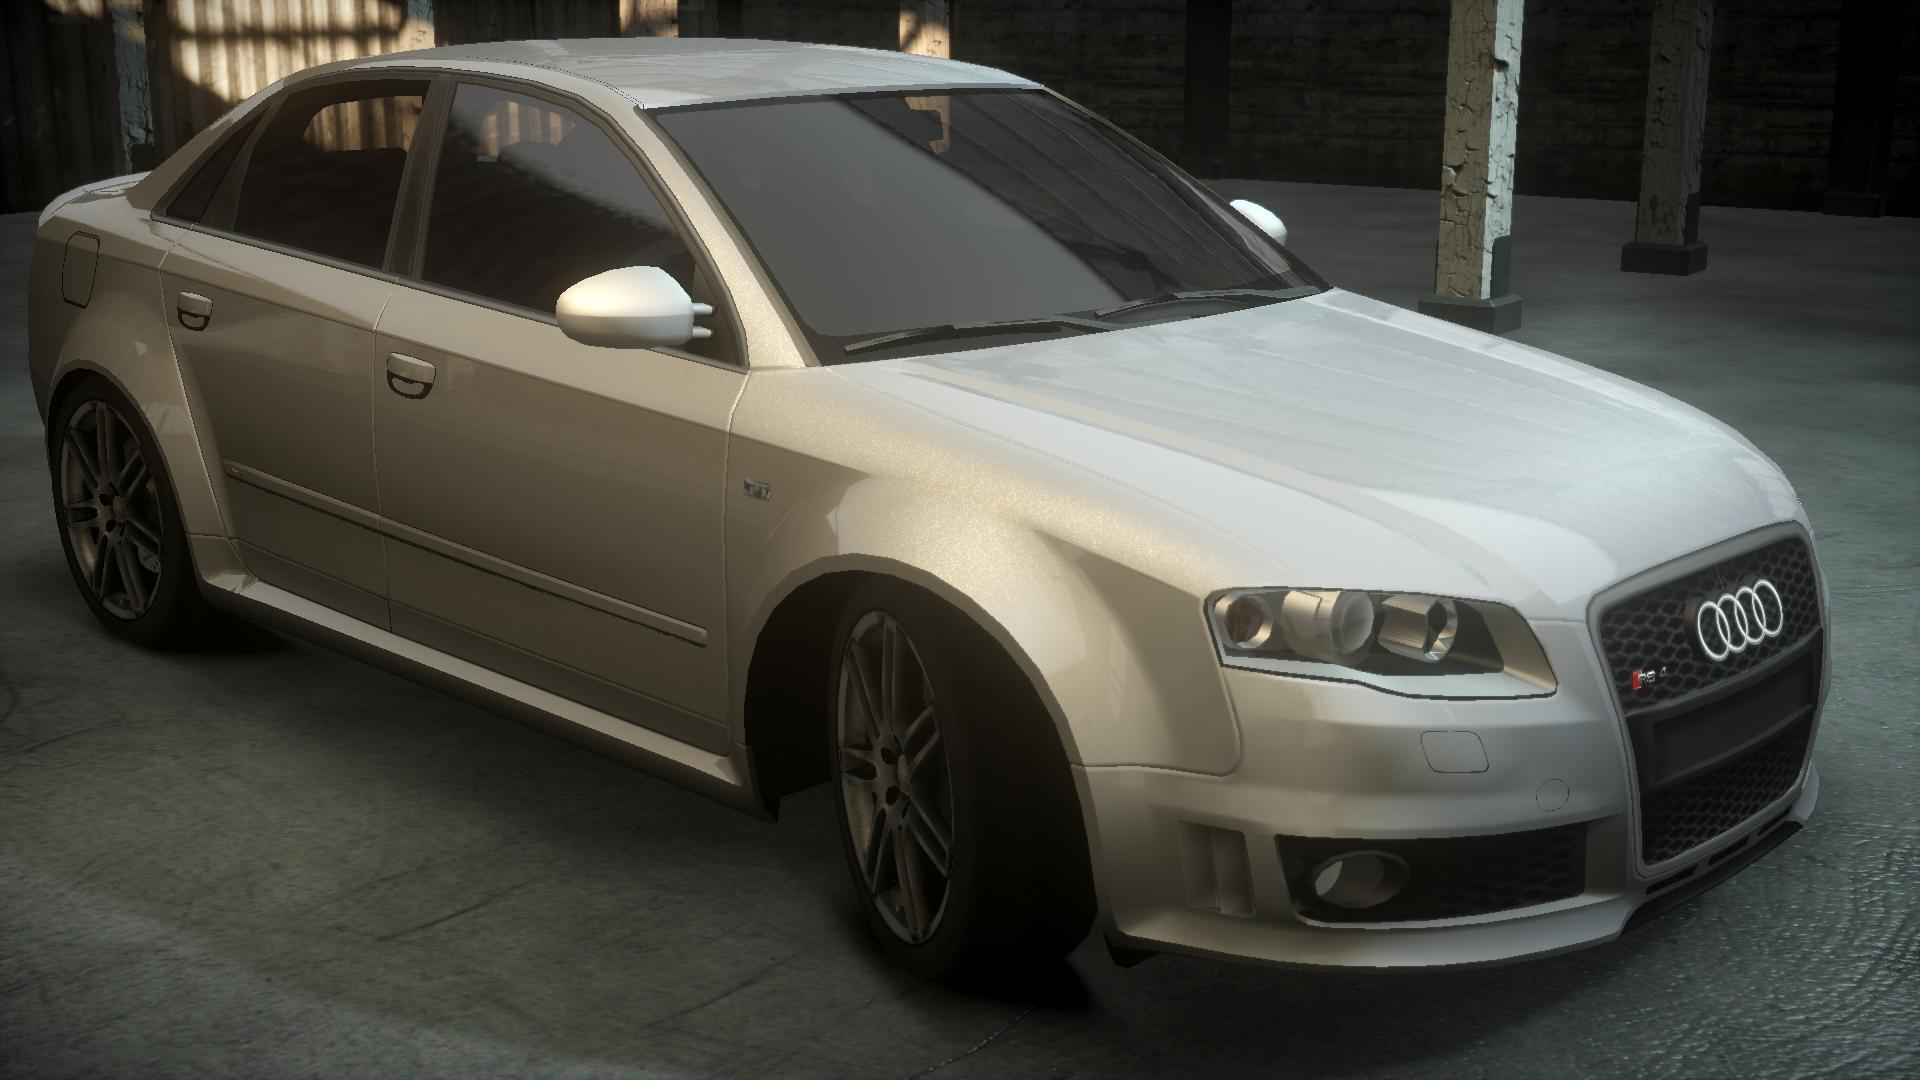 Audi A4 Wiki >> Audi RS 4 | Need for Speed Wiki | FANDOM powered by Wikia